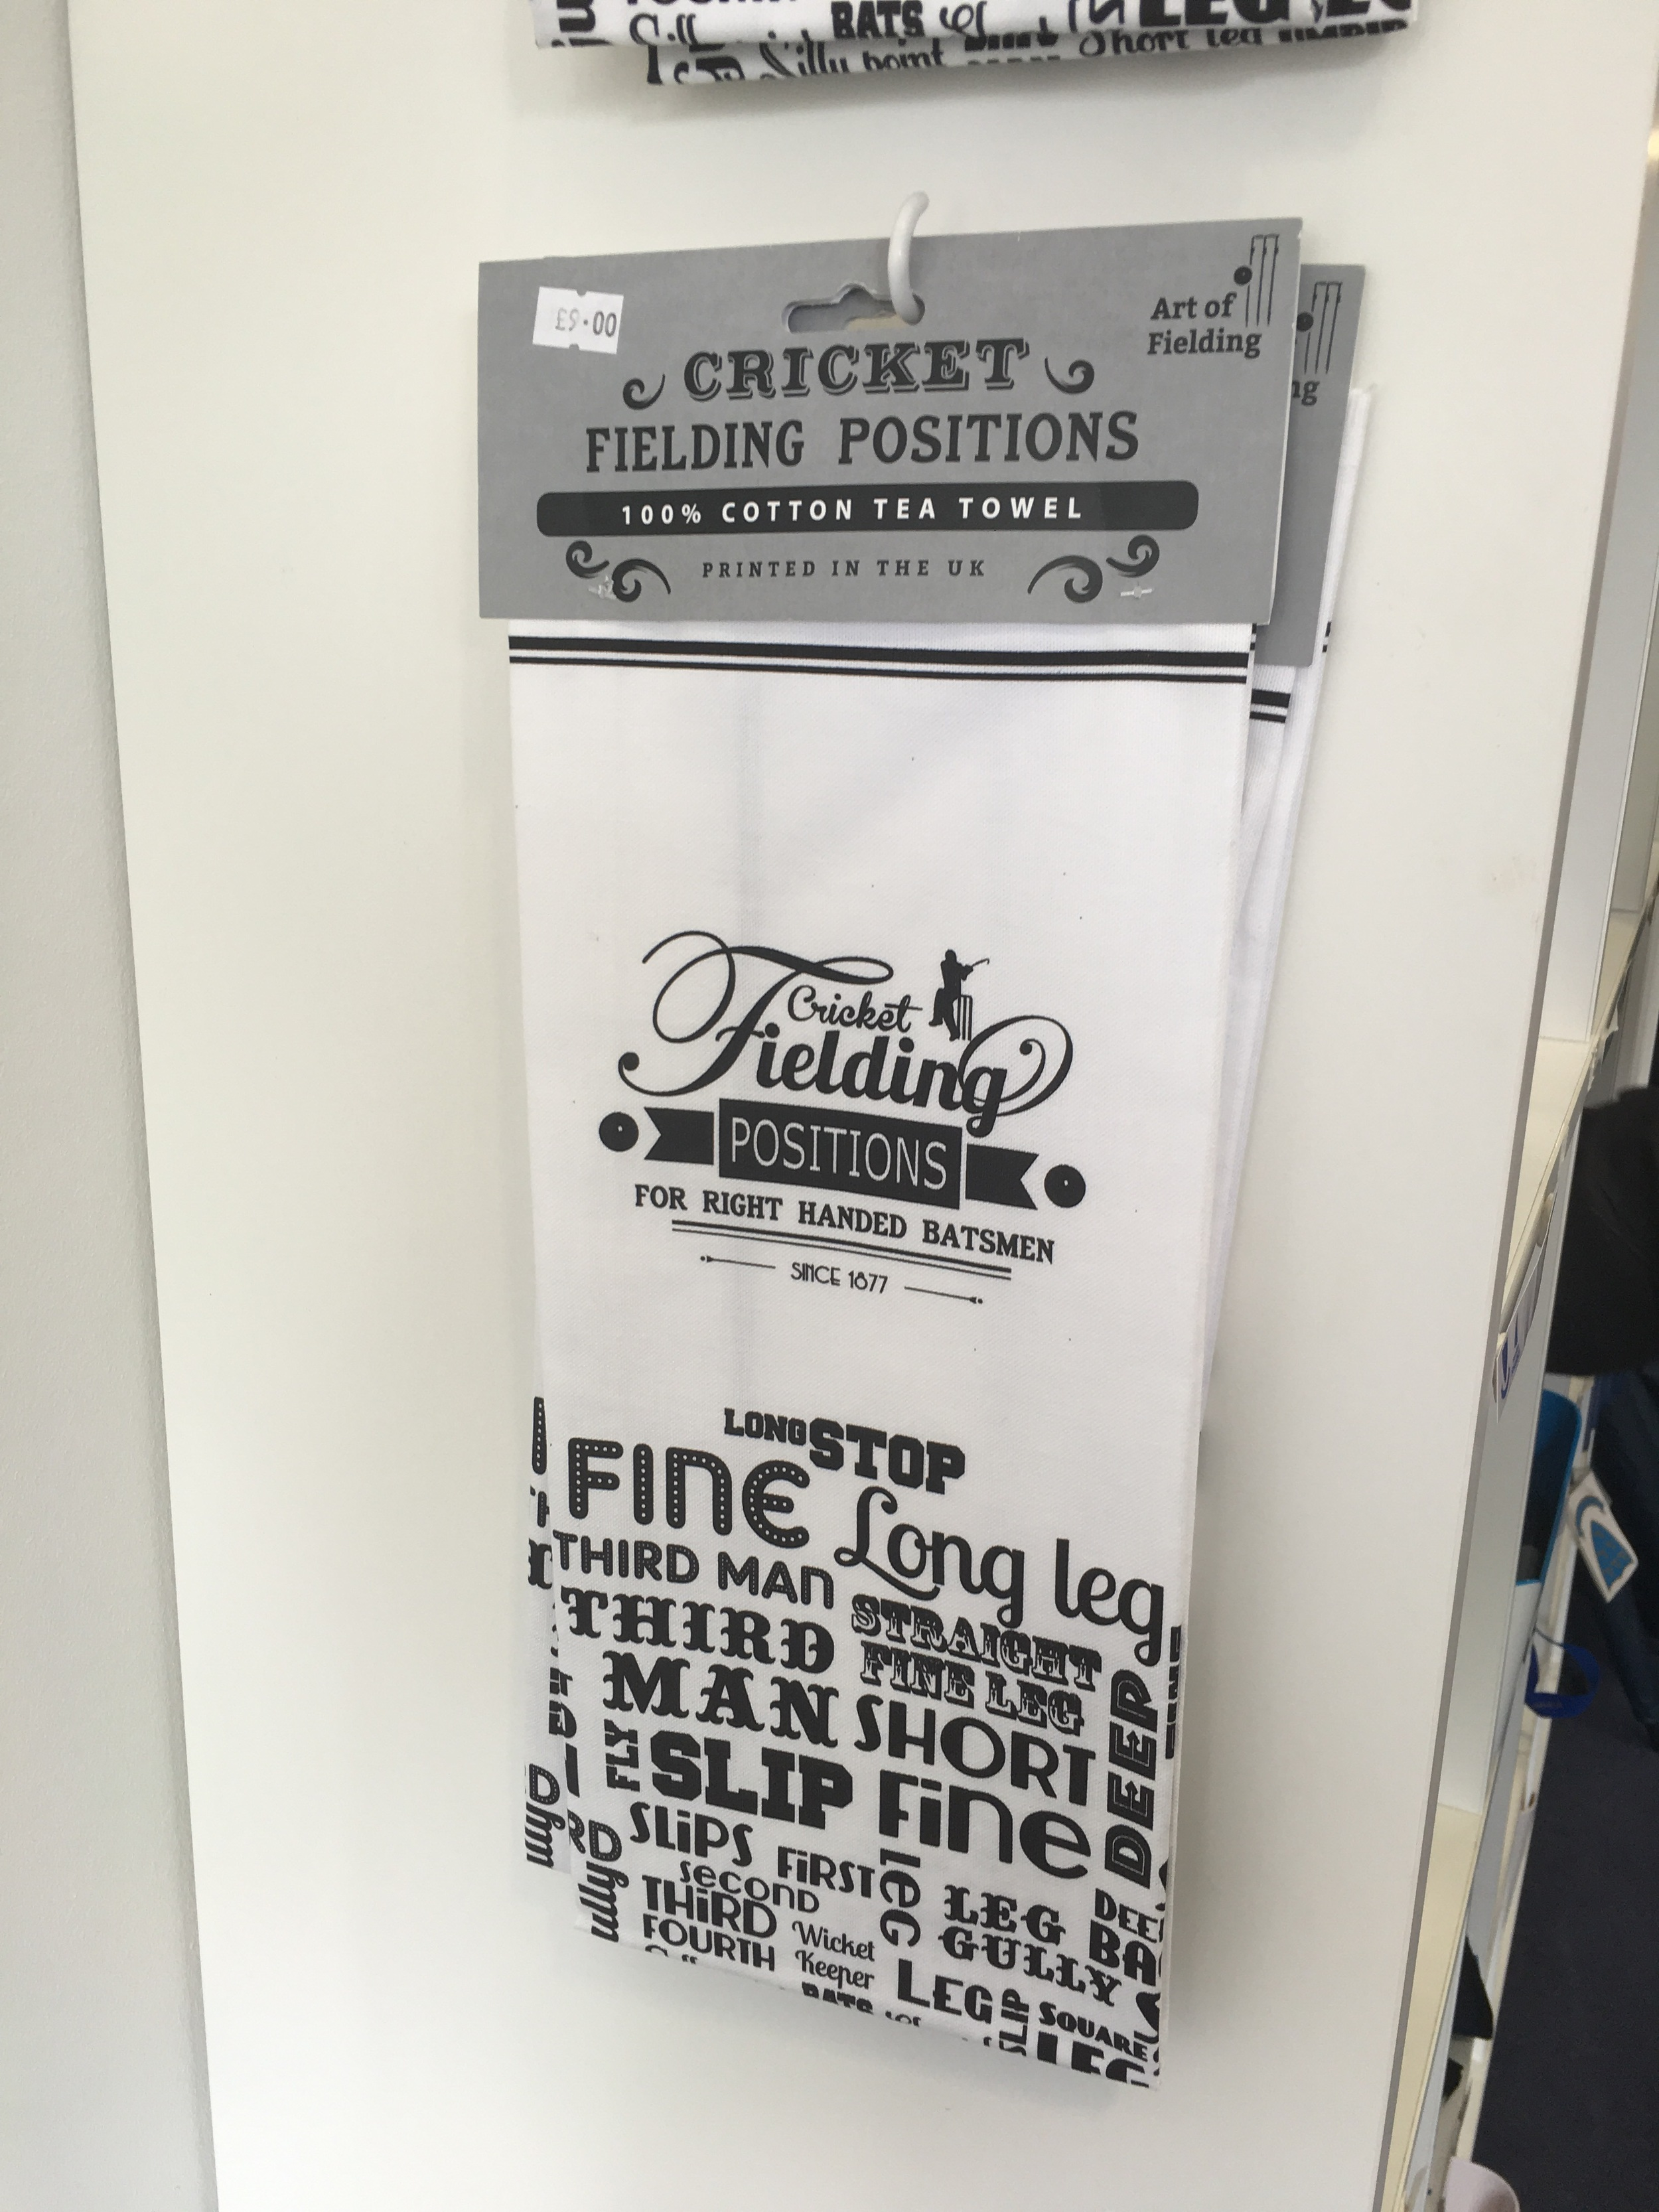 Art of Fielding tea towel & prints available at Sussex Cricket Ground http://www.artoffielding.co.uk